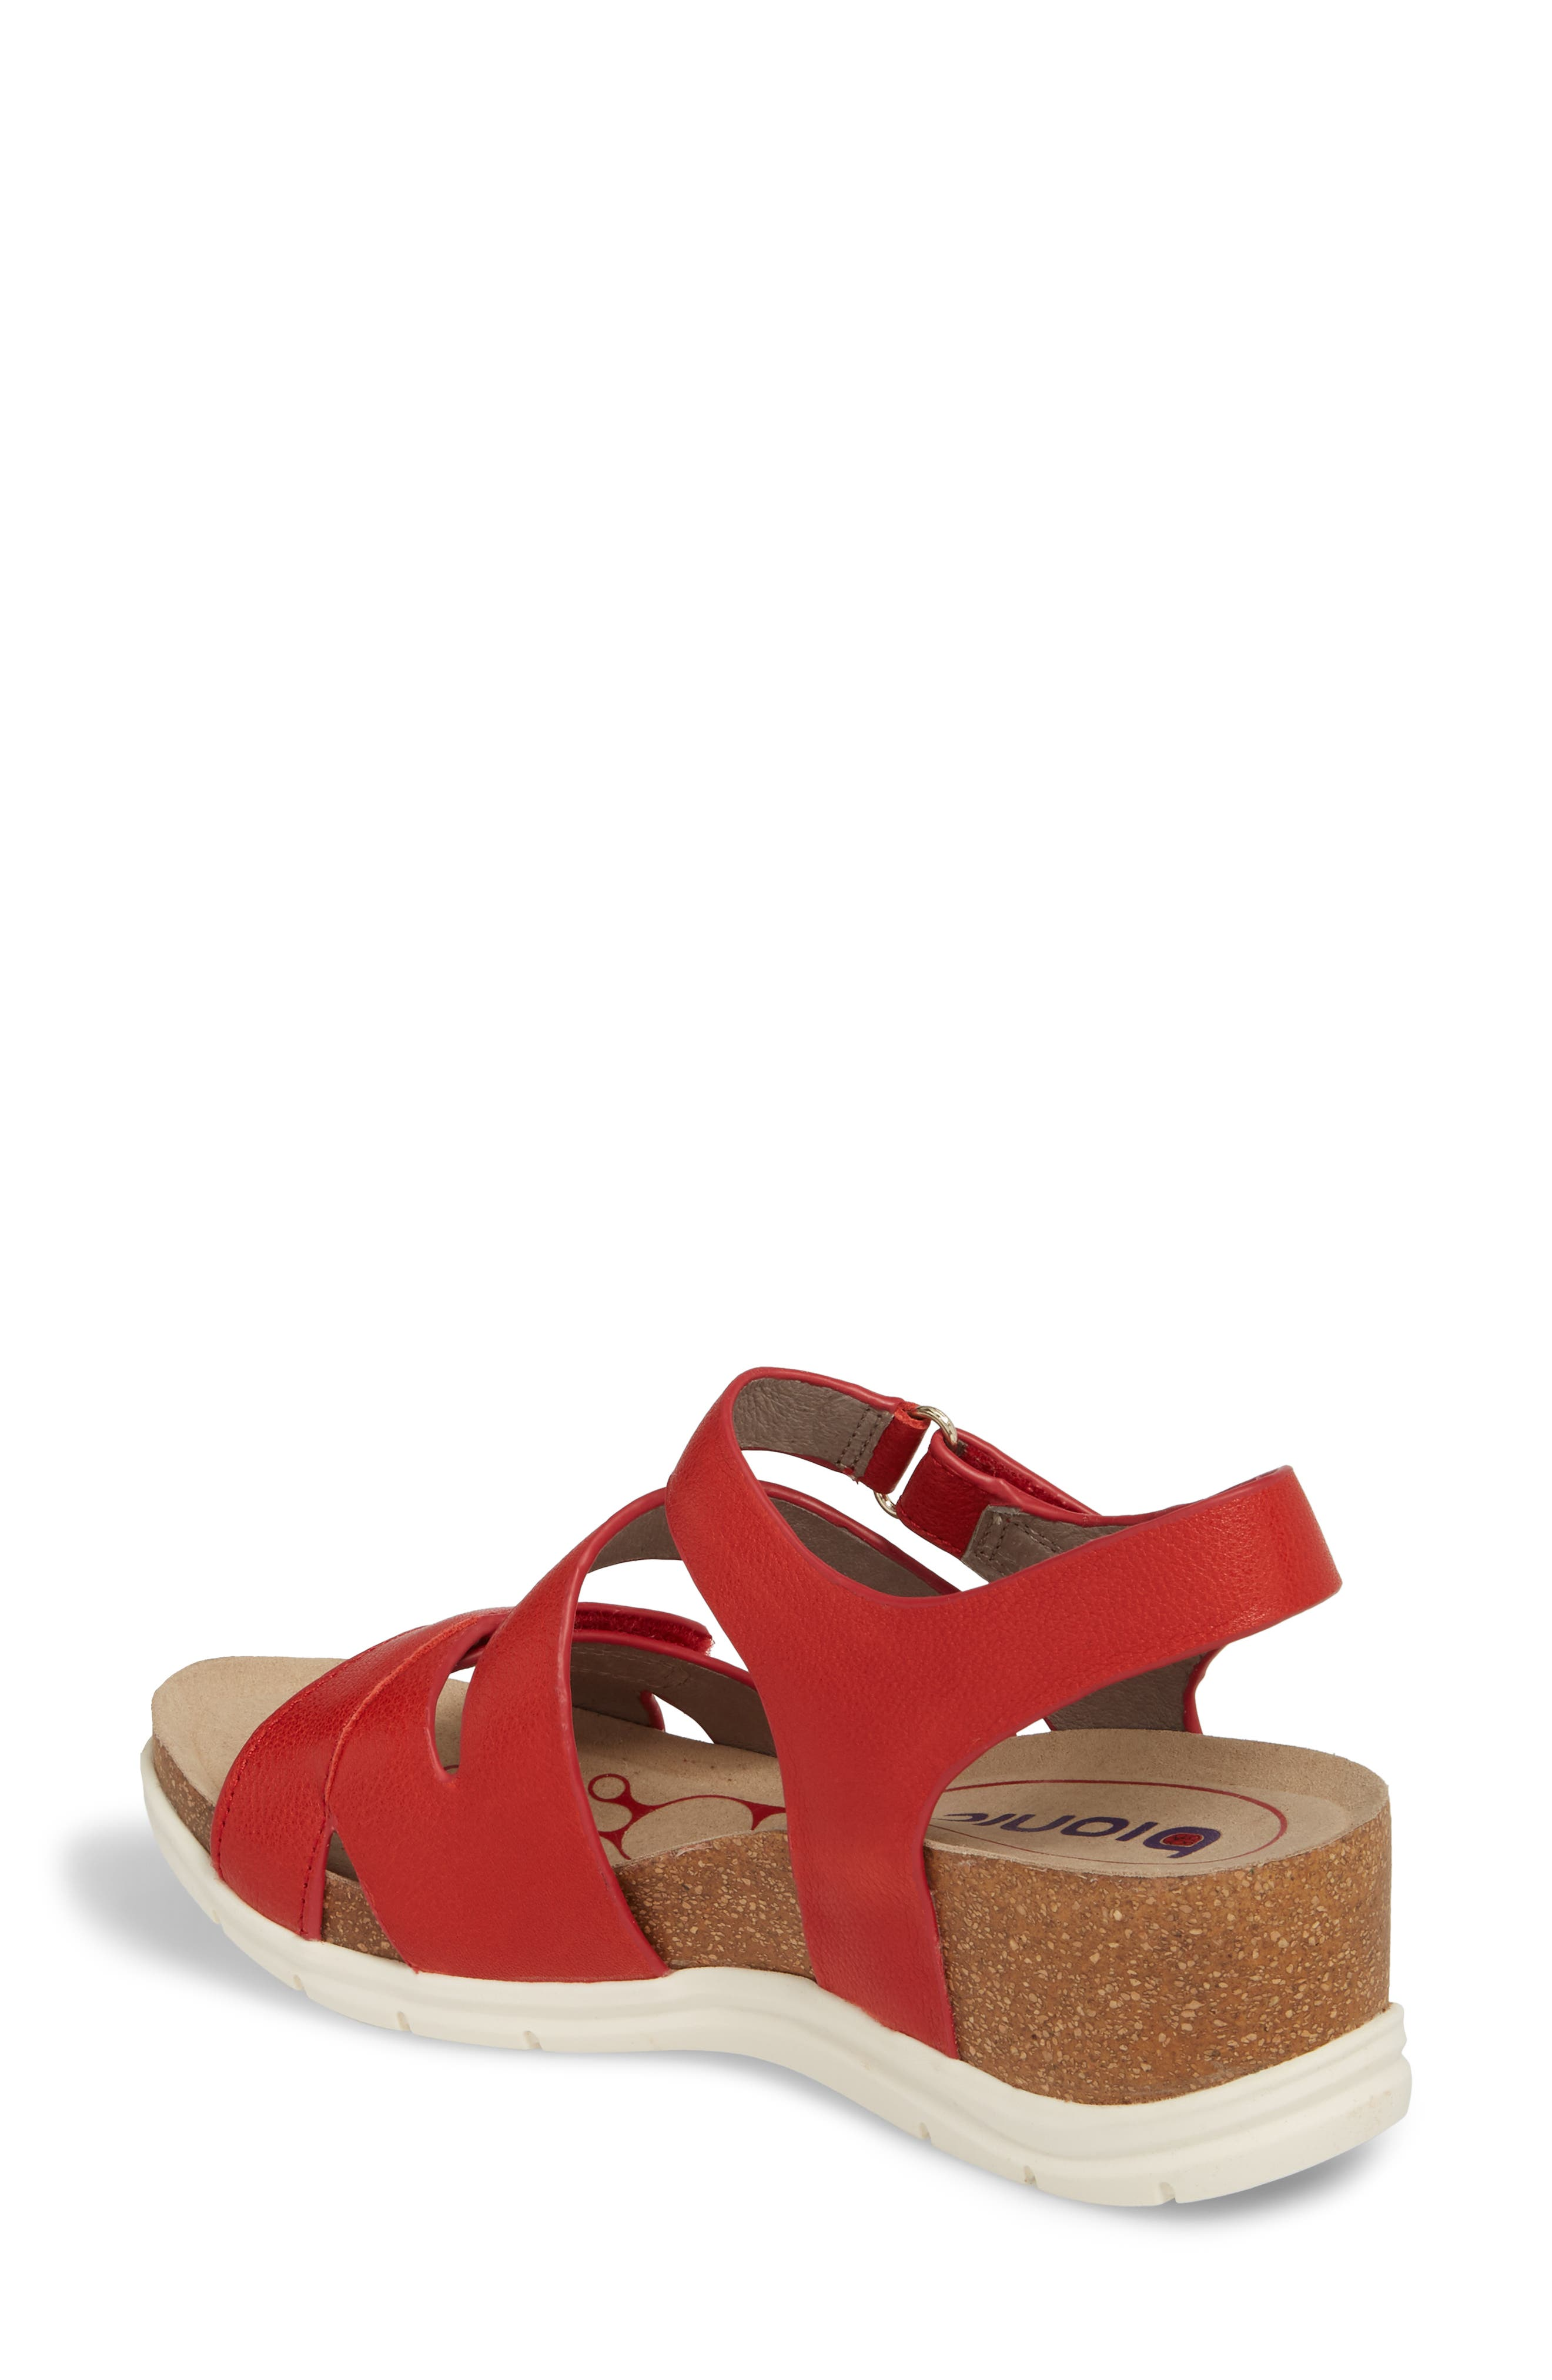 Passion Wedge Sandal,                             Alternate thumbnail 2, color,                             Fire Red Leather